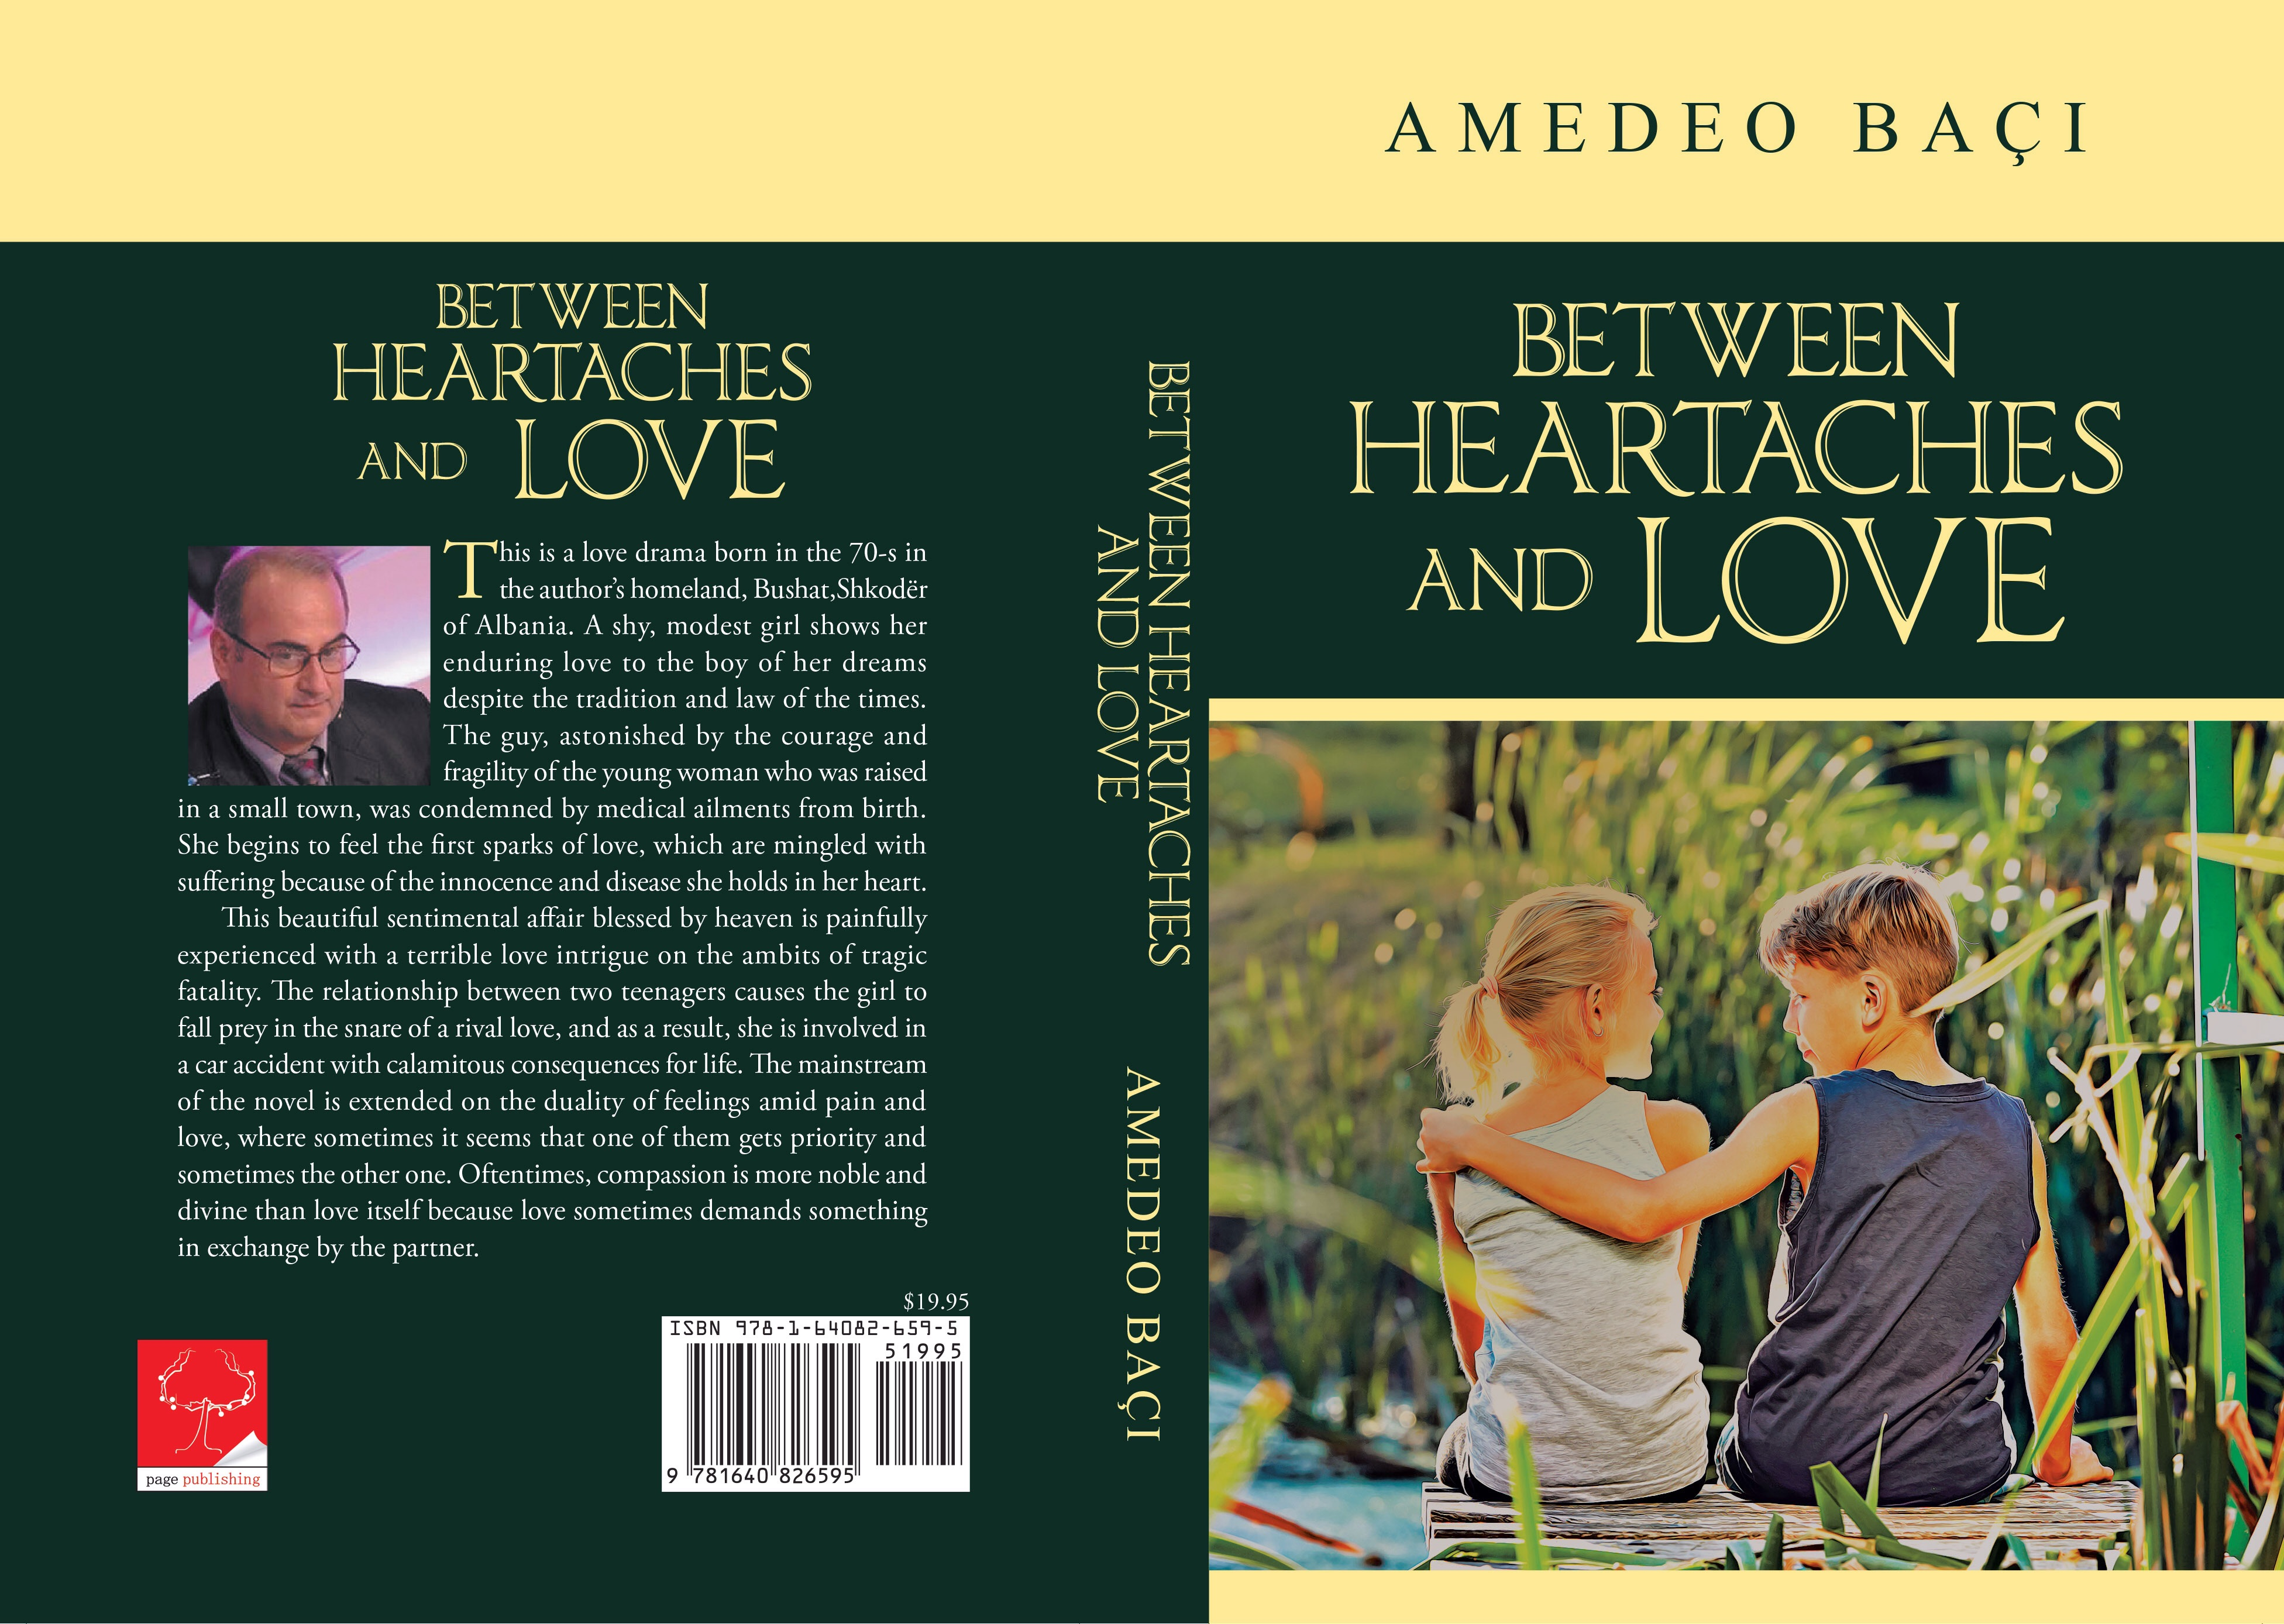 Between Heartaches and Love